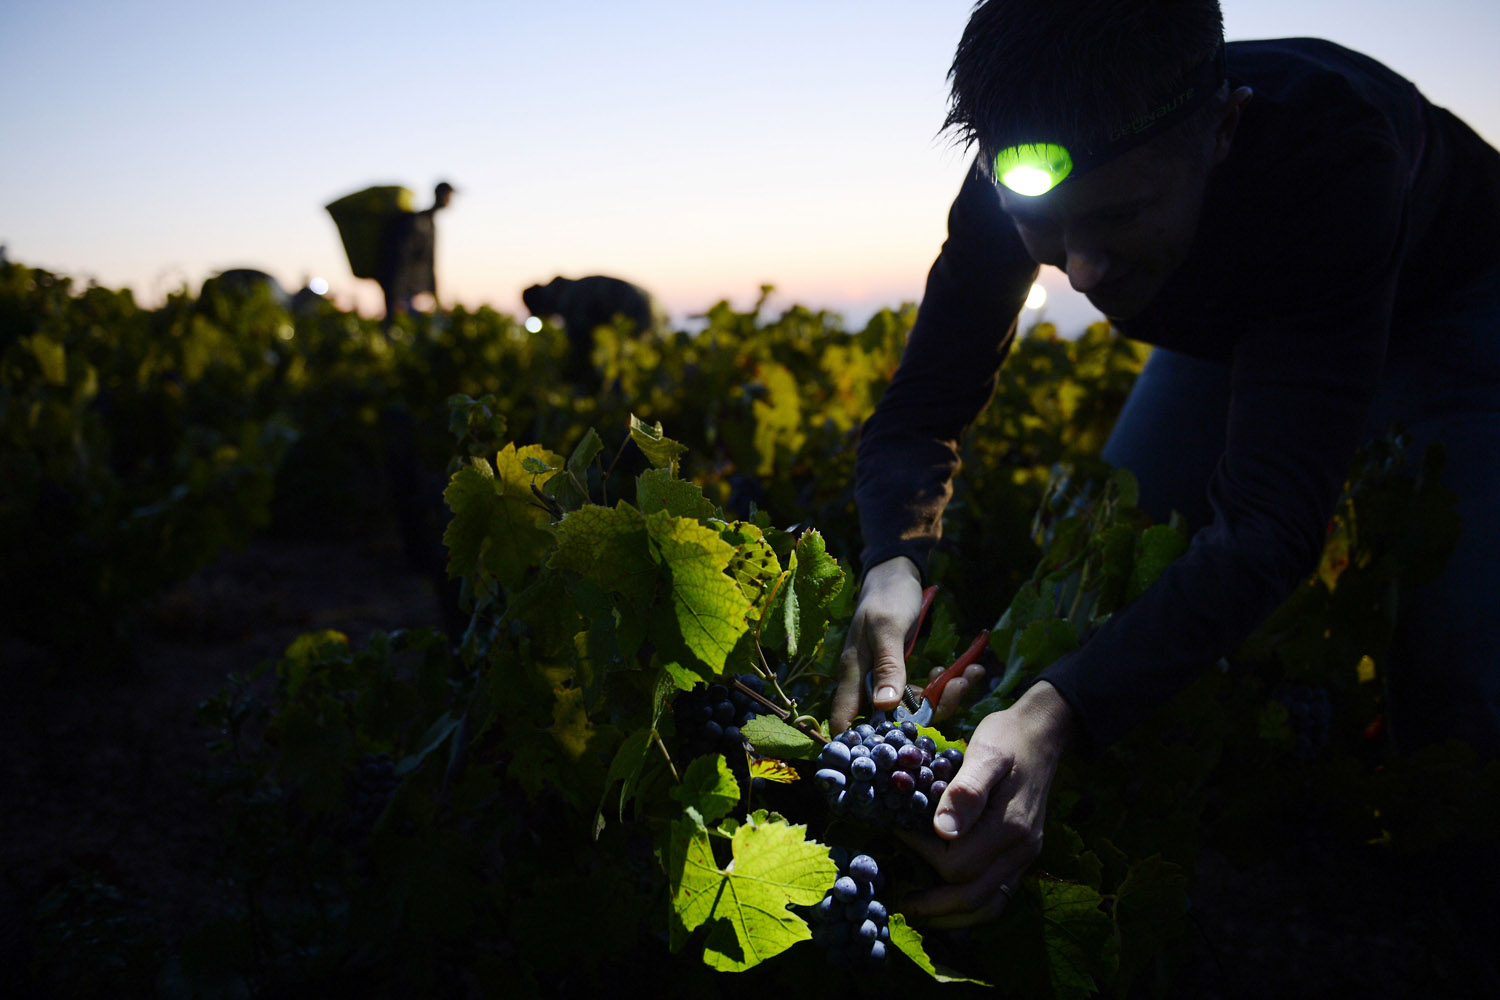 Sept. 24, 2013. A picker working overnight cuts grapes at dawn on the first day of the Beaujolais' harvest in the  Moulin a Vent  vineyard, near Chenas, Beaujolais, eastern France.